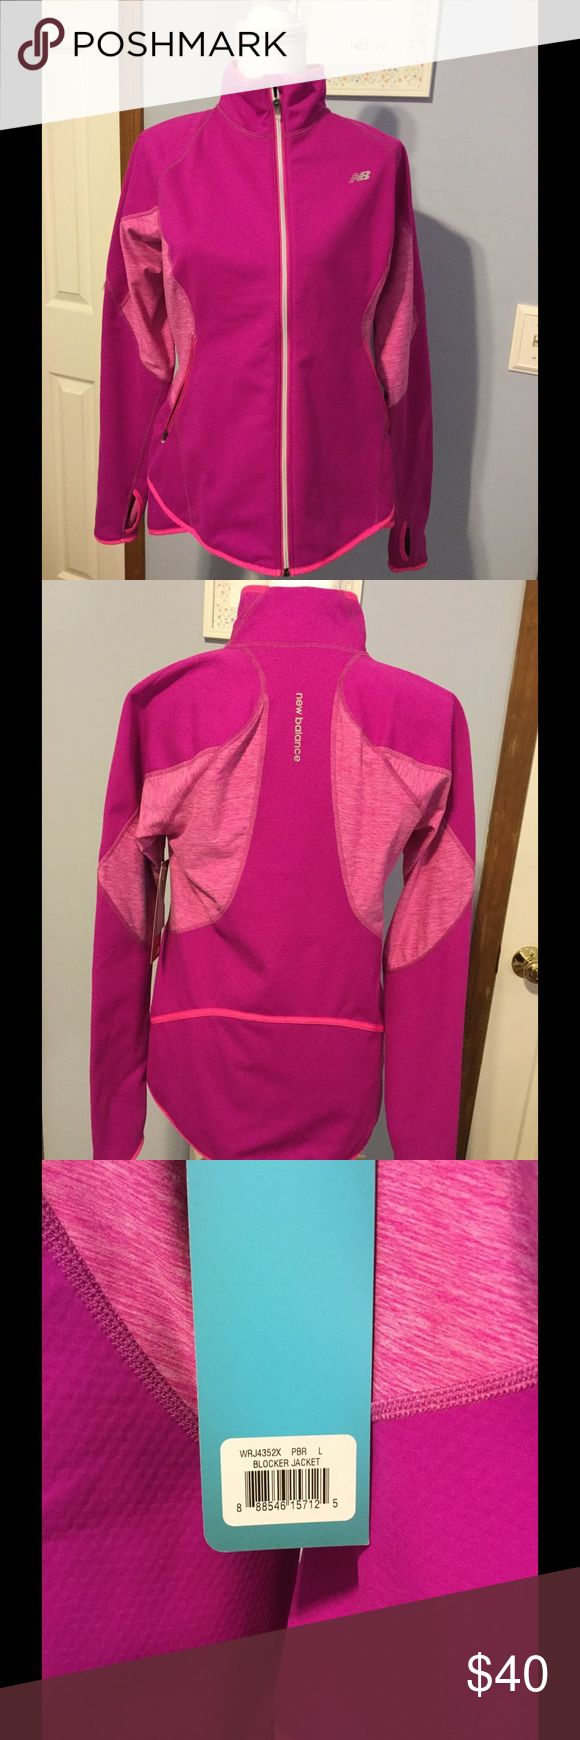 New Balance women's running jacket New Balance women's jacket in color magenta, great for runners, and has thumb holes in the sleeves. I believe this was called the Windblocker jacket. Never worn, tags still attached. Women's size Large.  New Balance Jackets & Coats